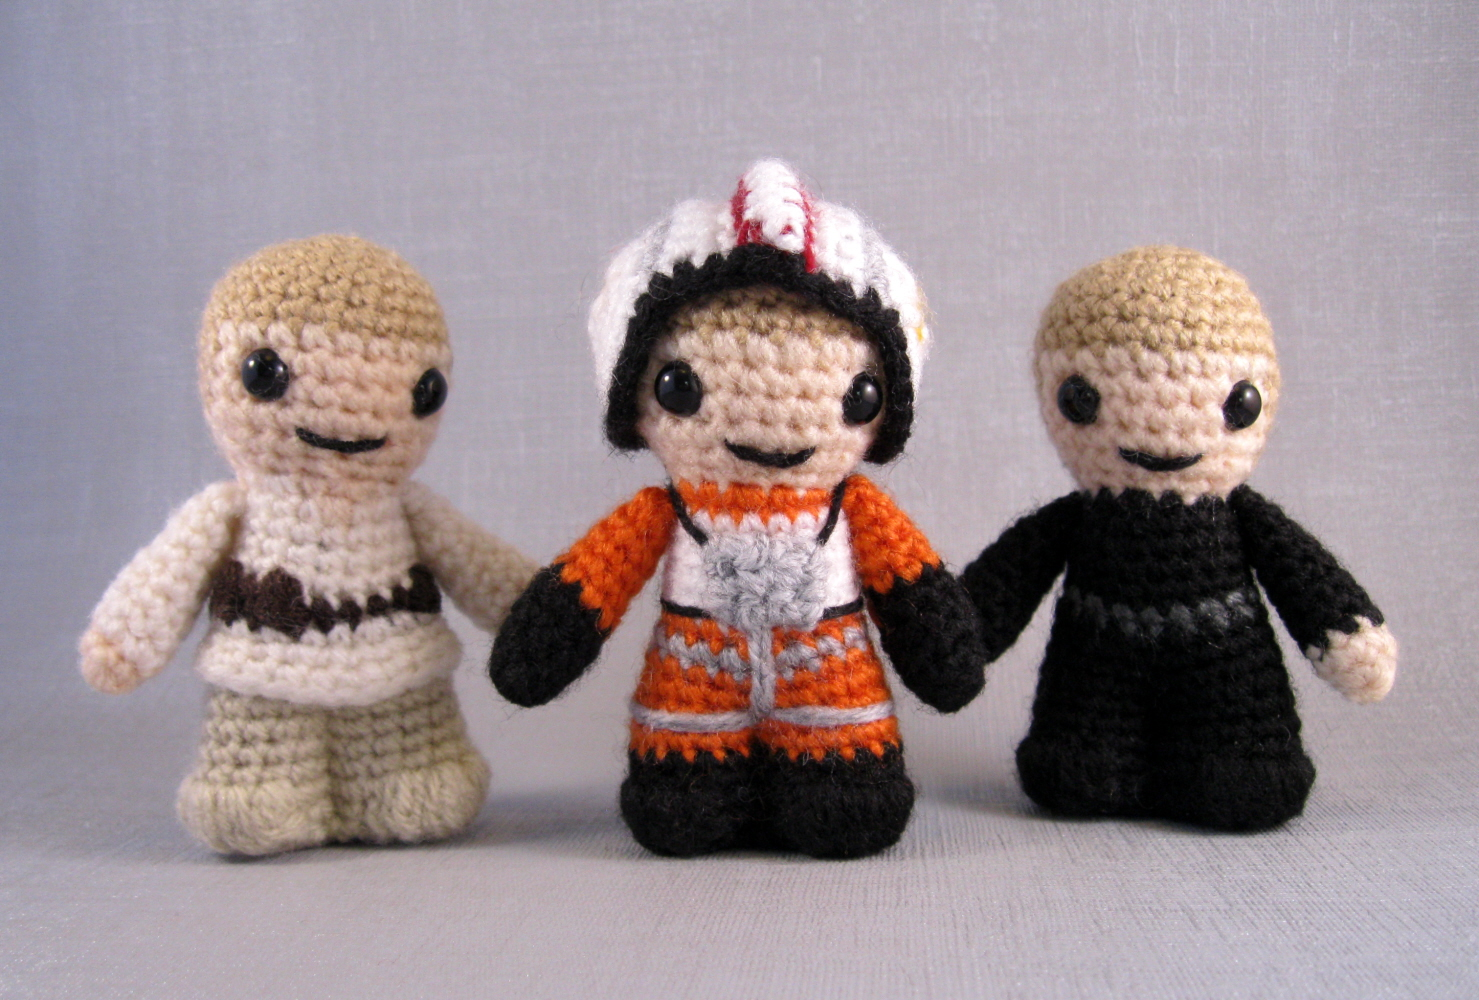 Amigurumi Star Wars Patterns : Lucyravenscar crochet creatures: luke skywalker times three